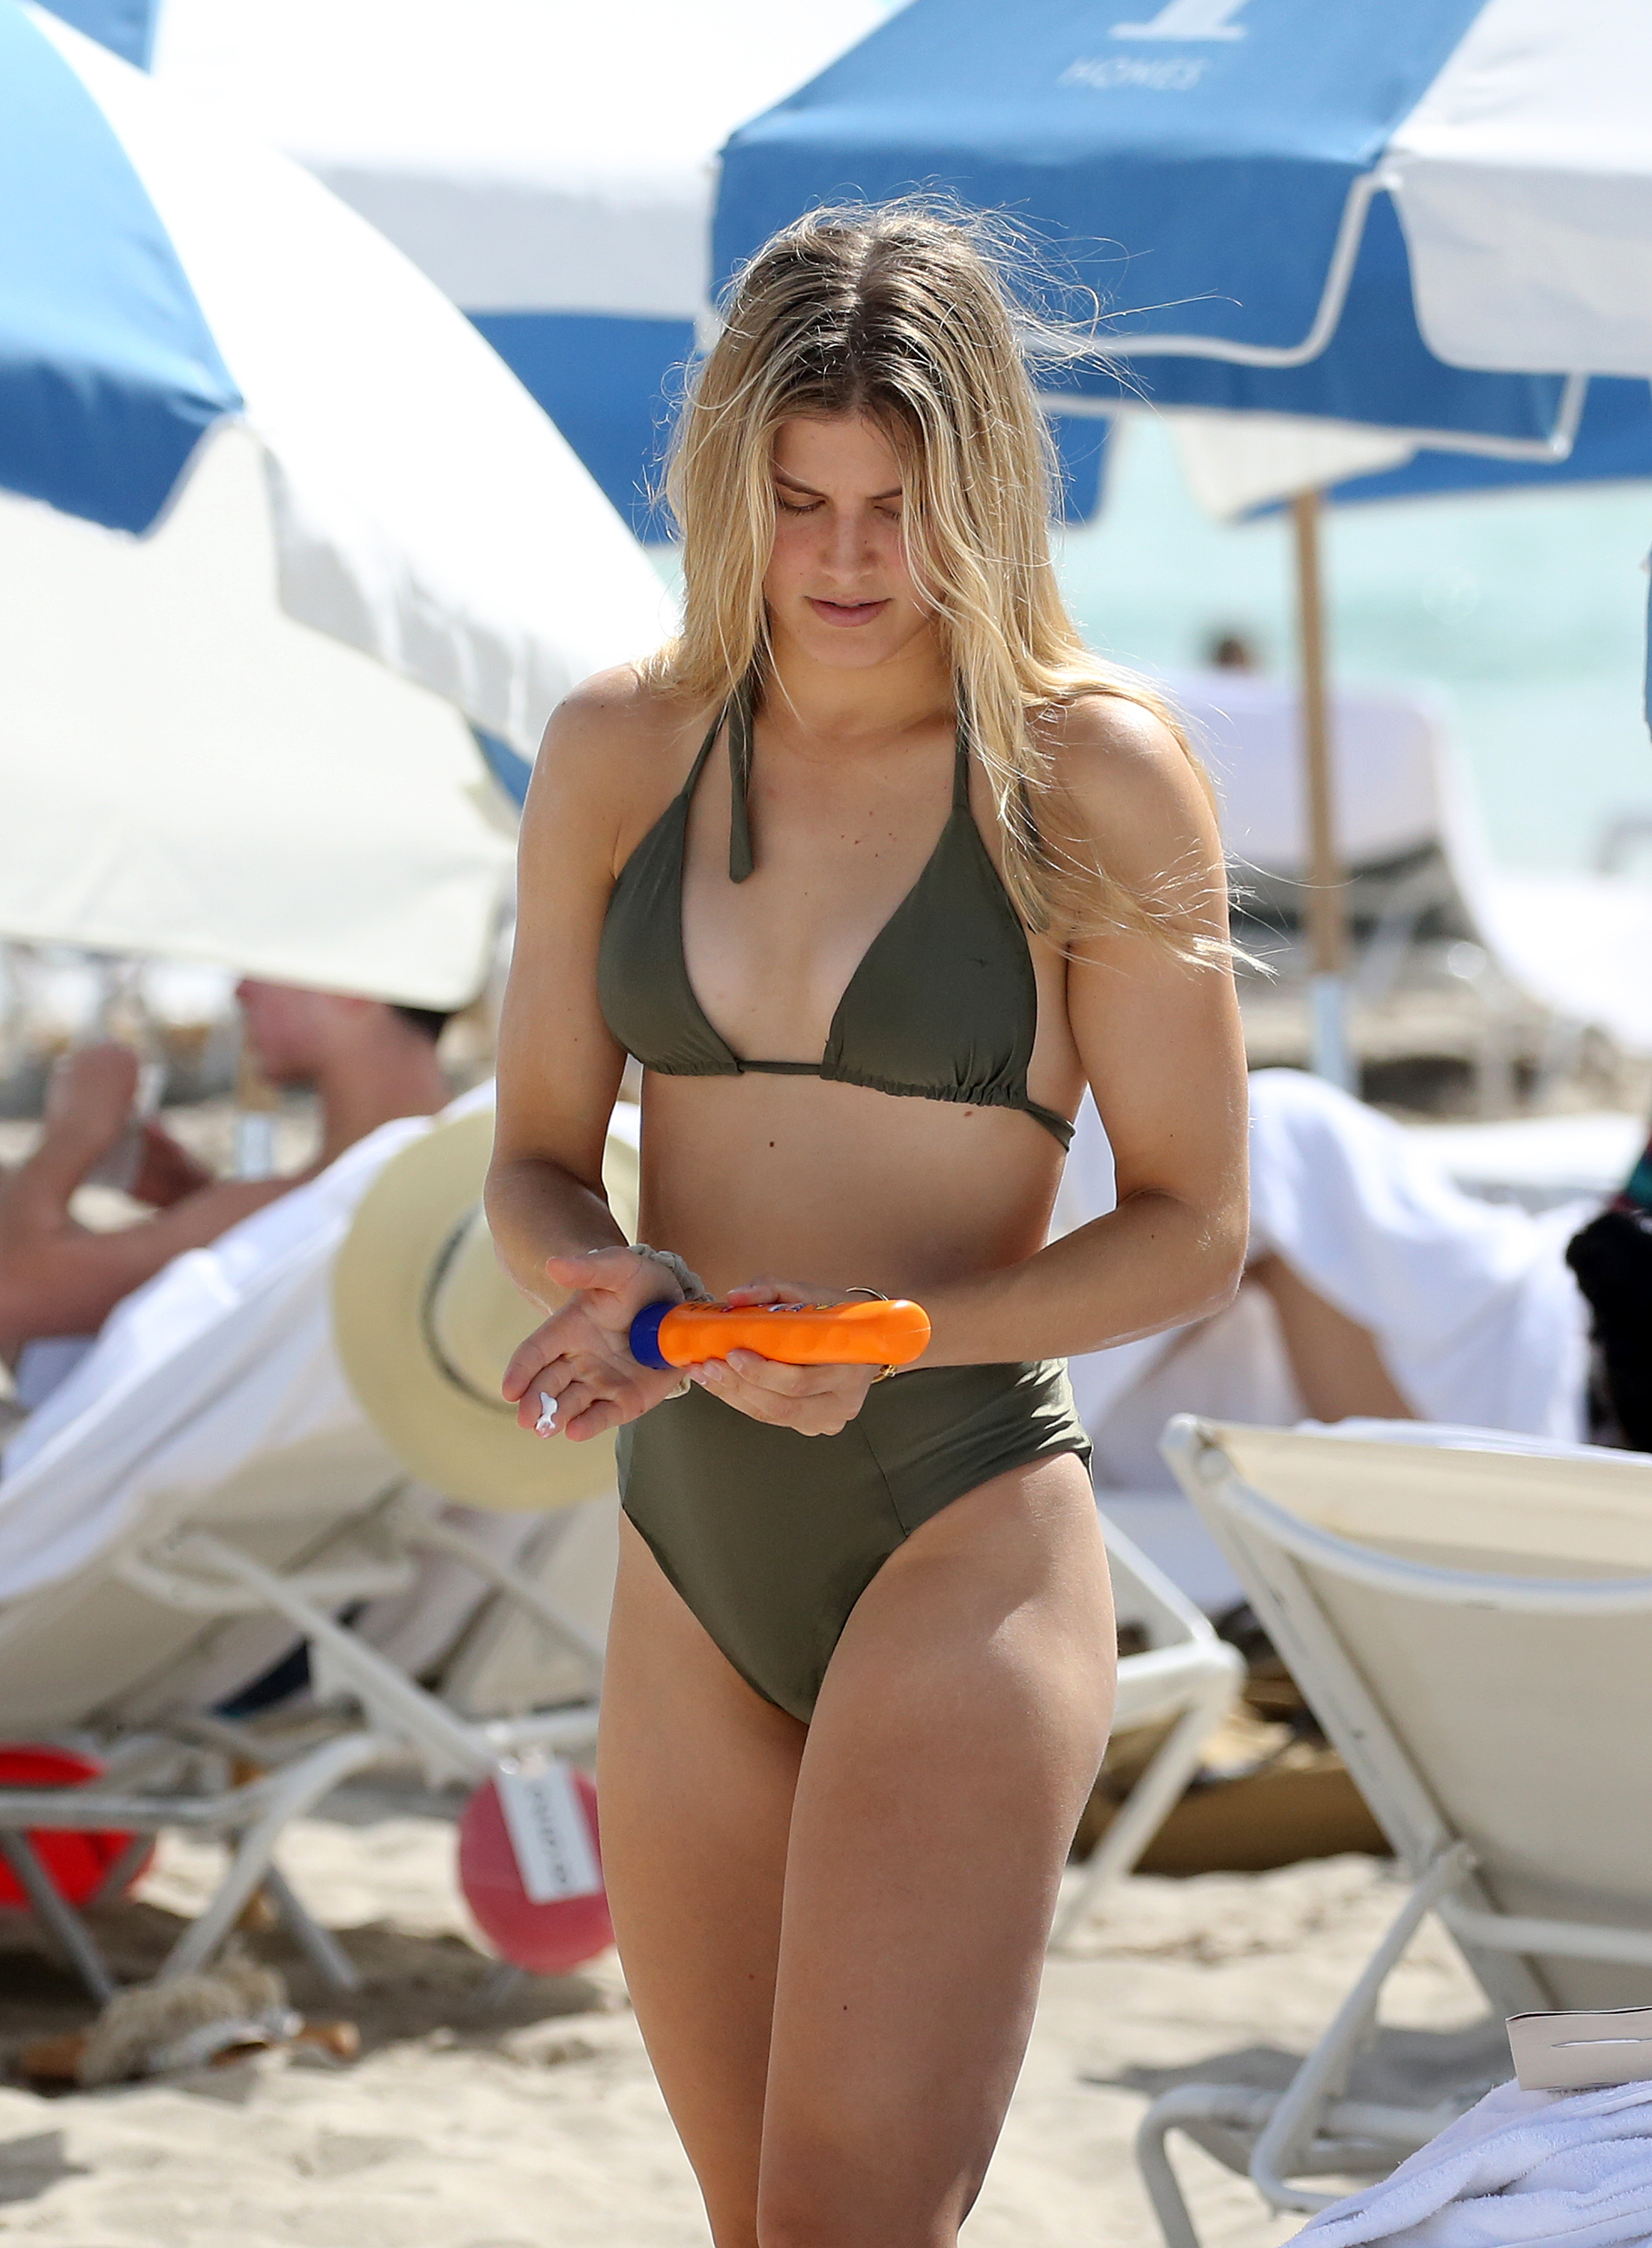 Bouchard reached the Wimbledon final in 2014